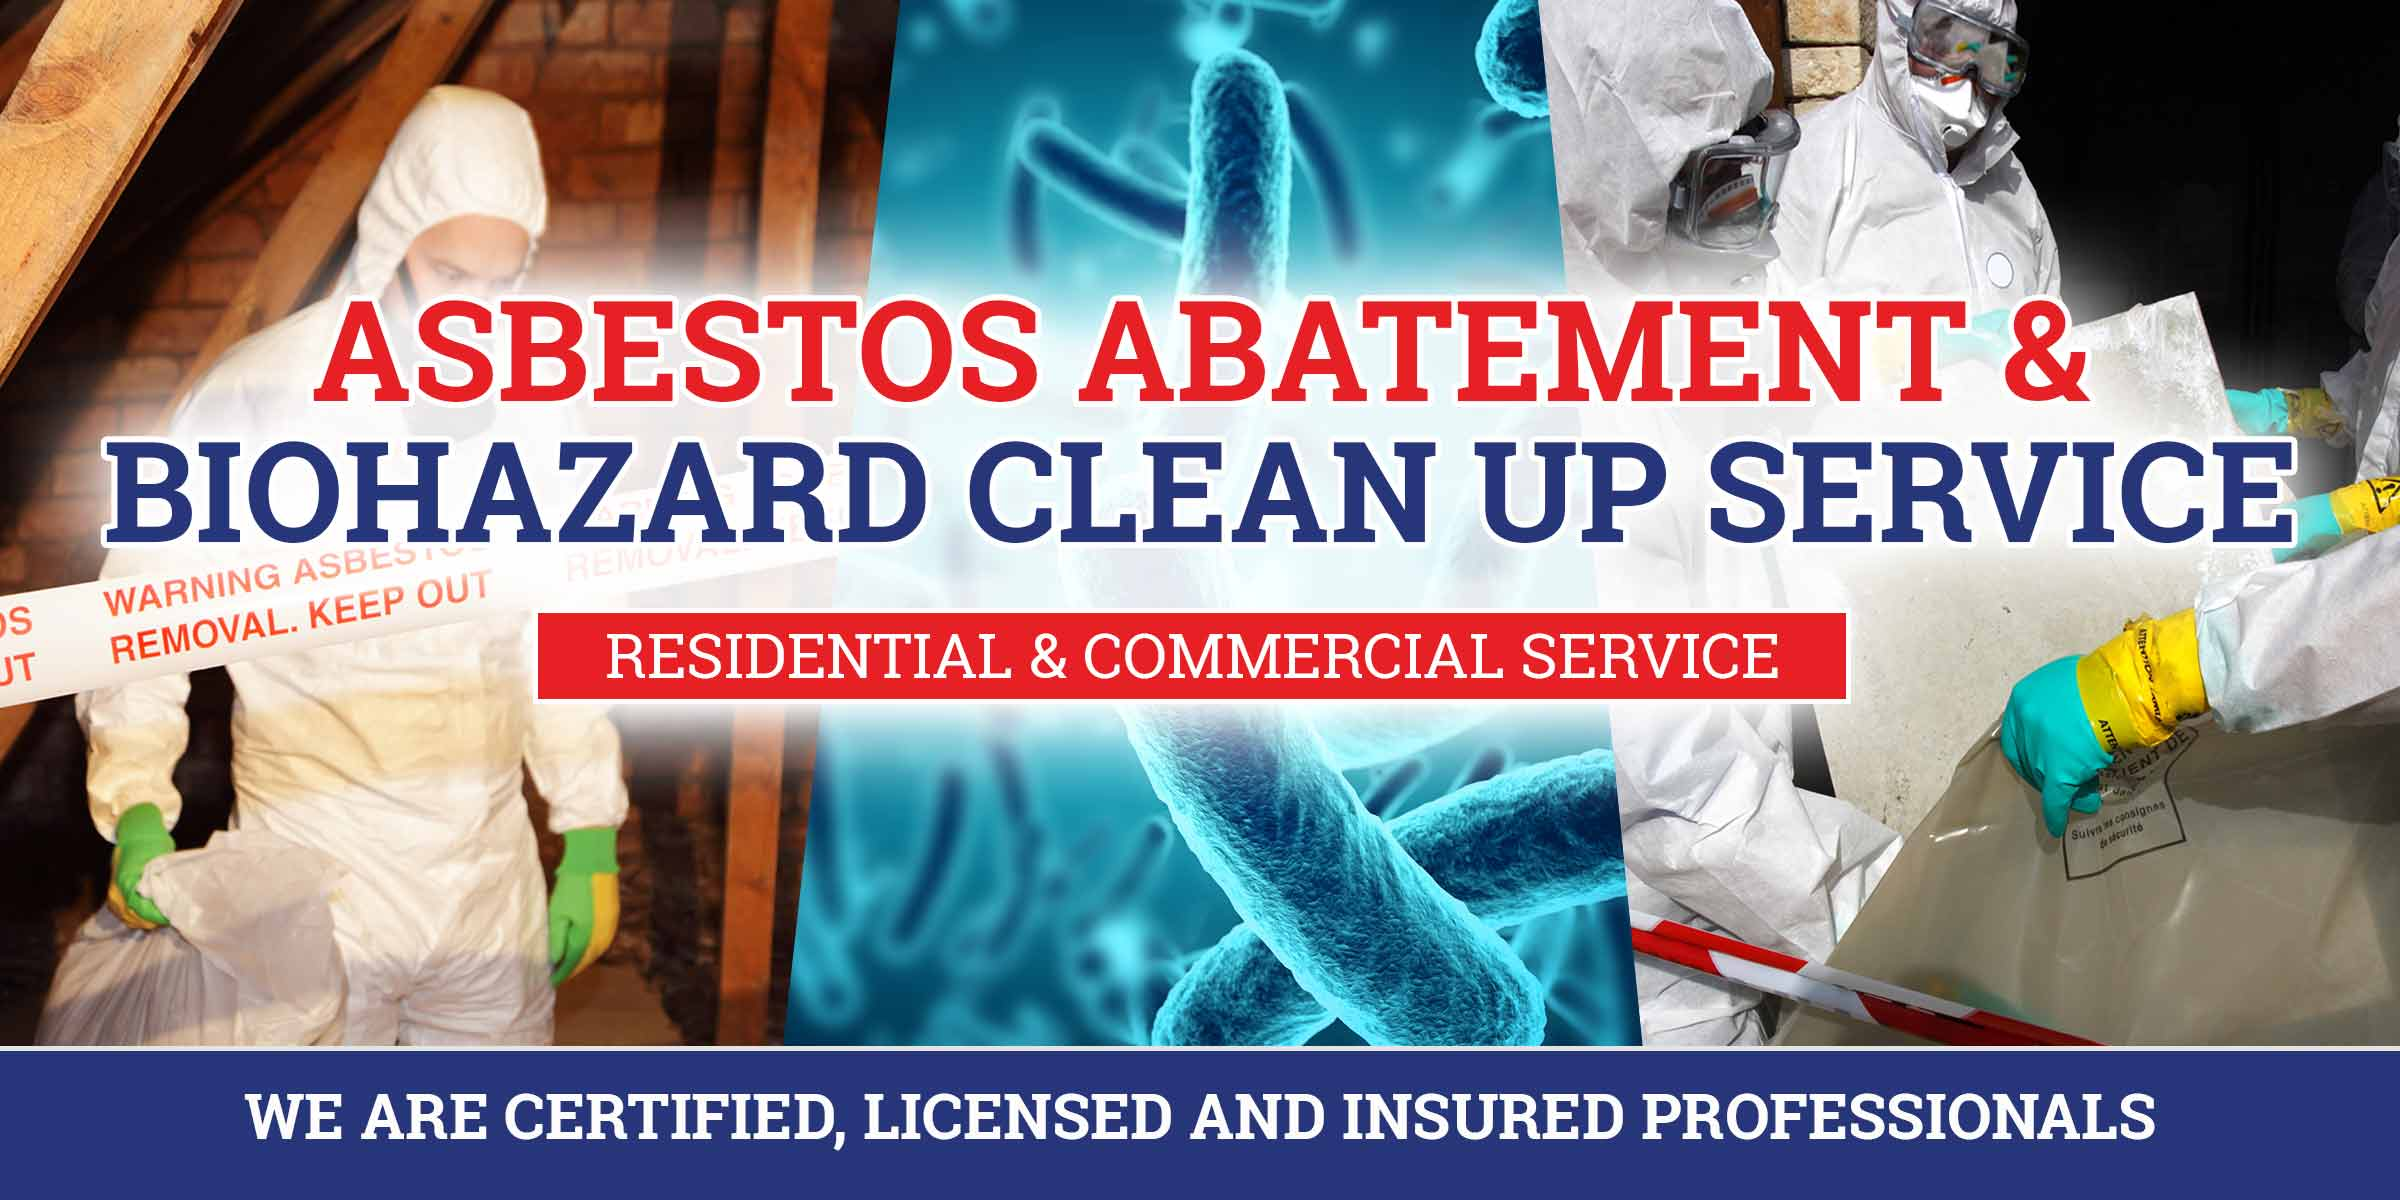 asbestos abatement and biohazard clean up